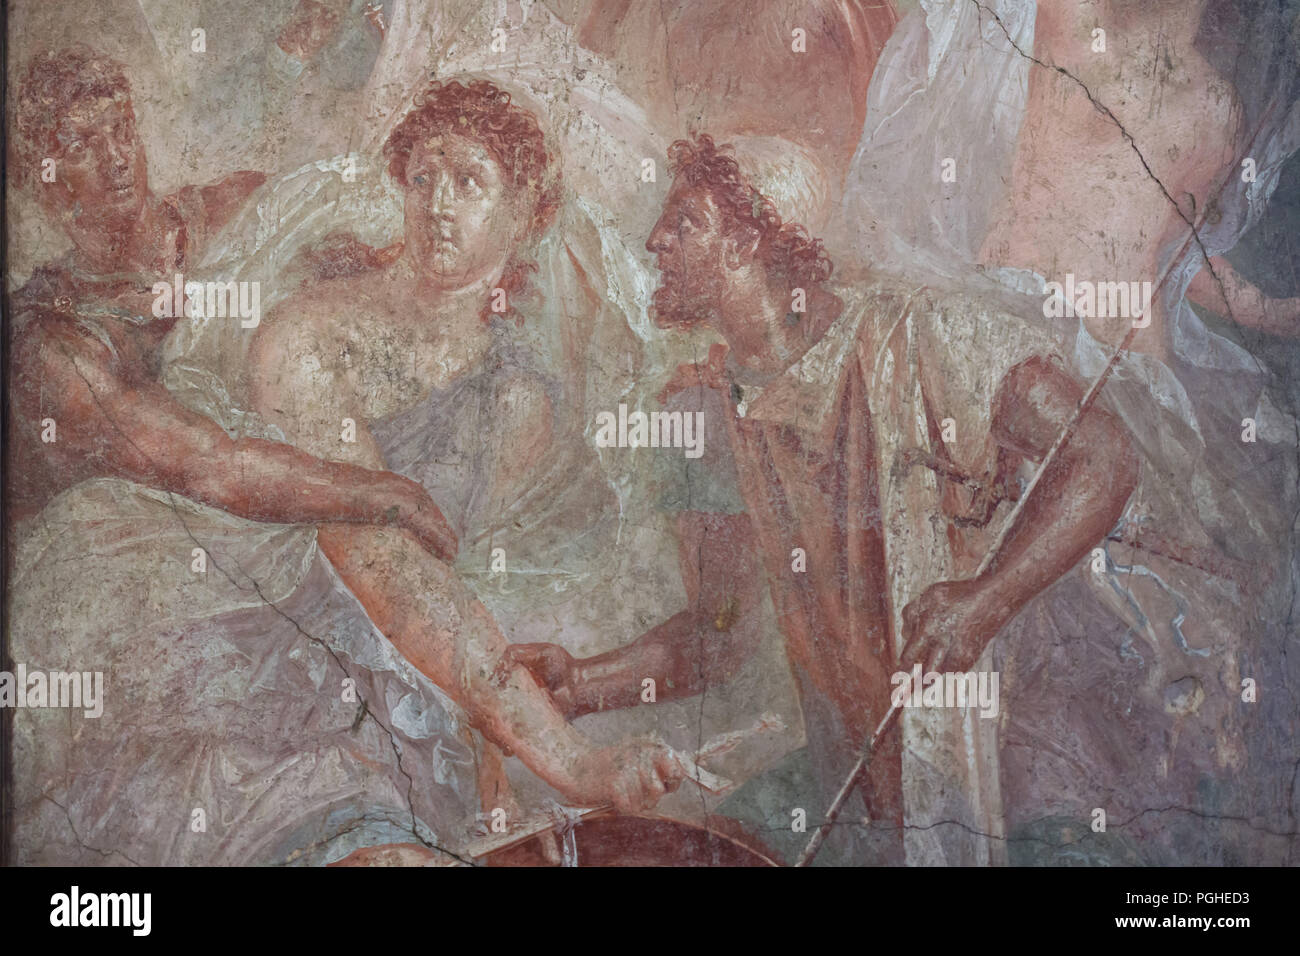 Achilles dressed as woman discovered by Odysseus and Diomedes at Scyros depicted in the Roman fresco from the House of the Dioscuri (Casa dei Dioscuri) in Pompeii (1-79 AD), now on display in the National Archaeological Museum (Museo Archeologico Nazionale di Napoli) in Naples, Campania, Italy. Stock Photo